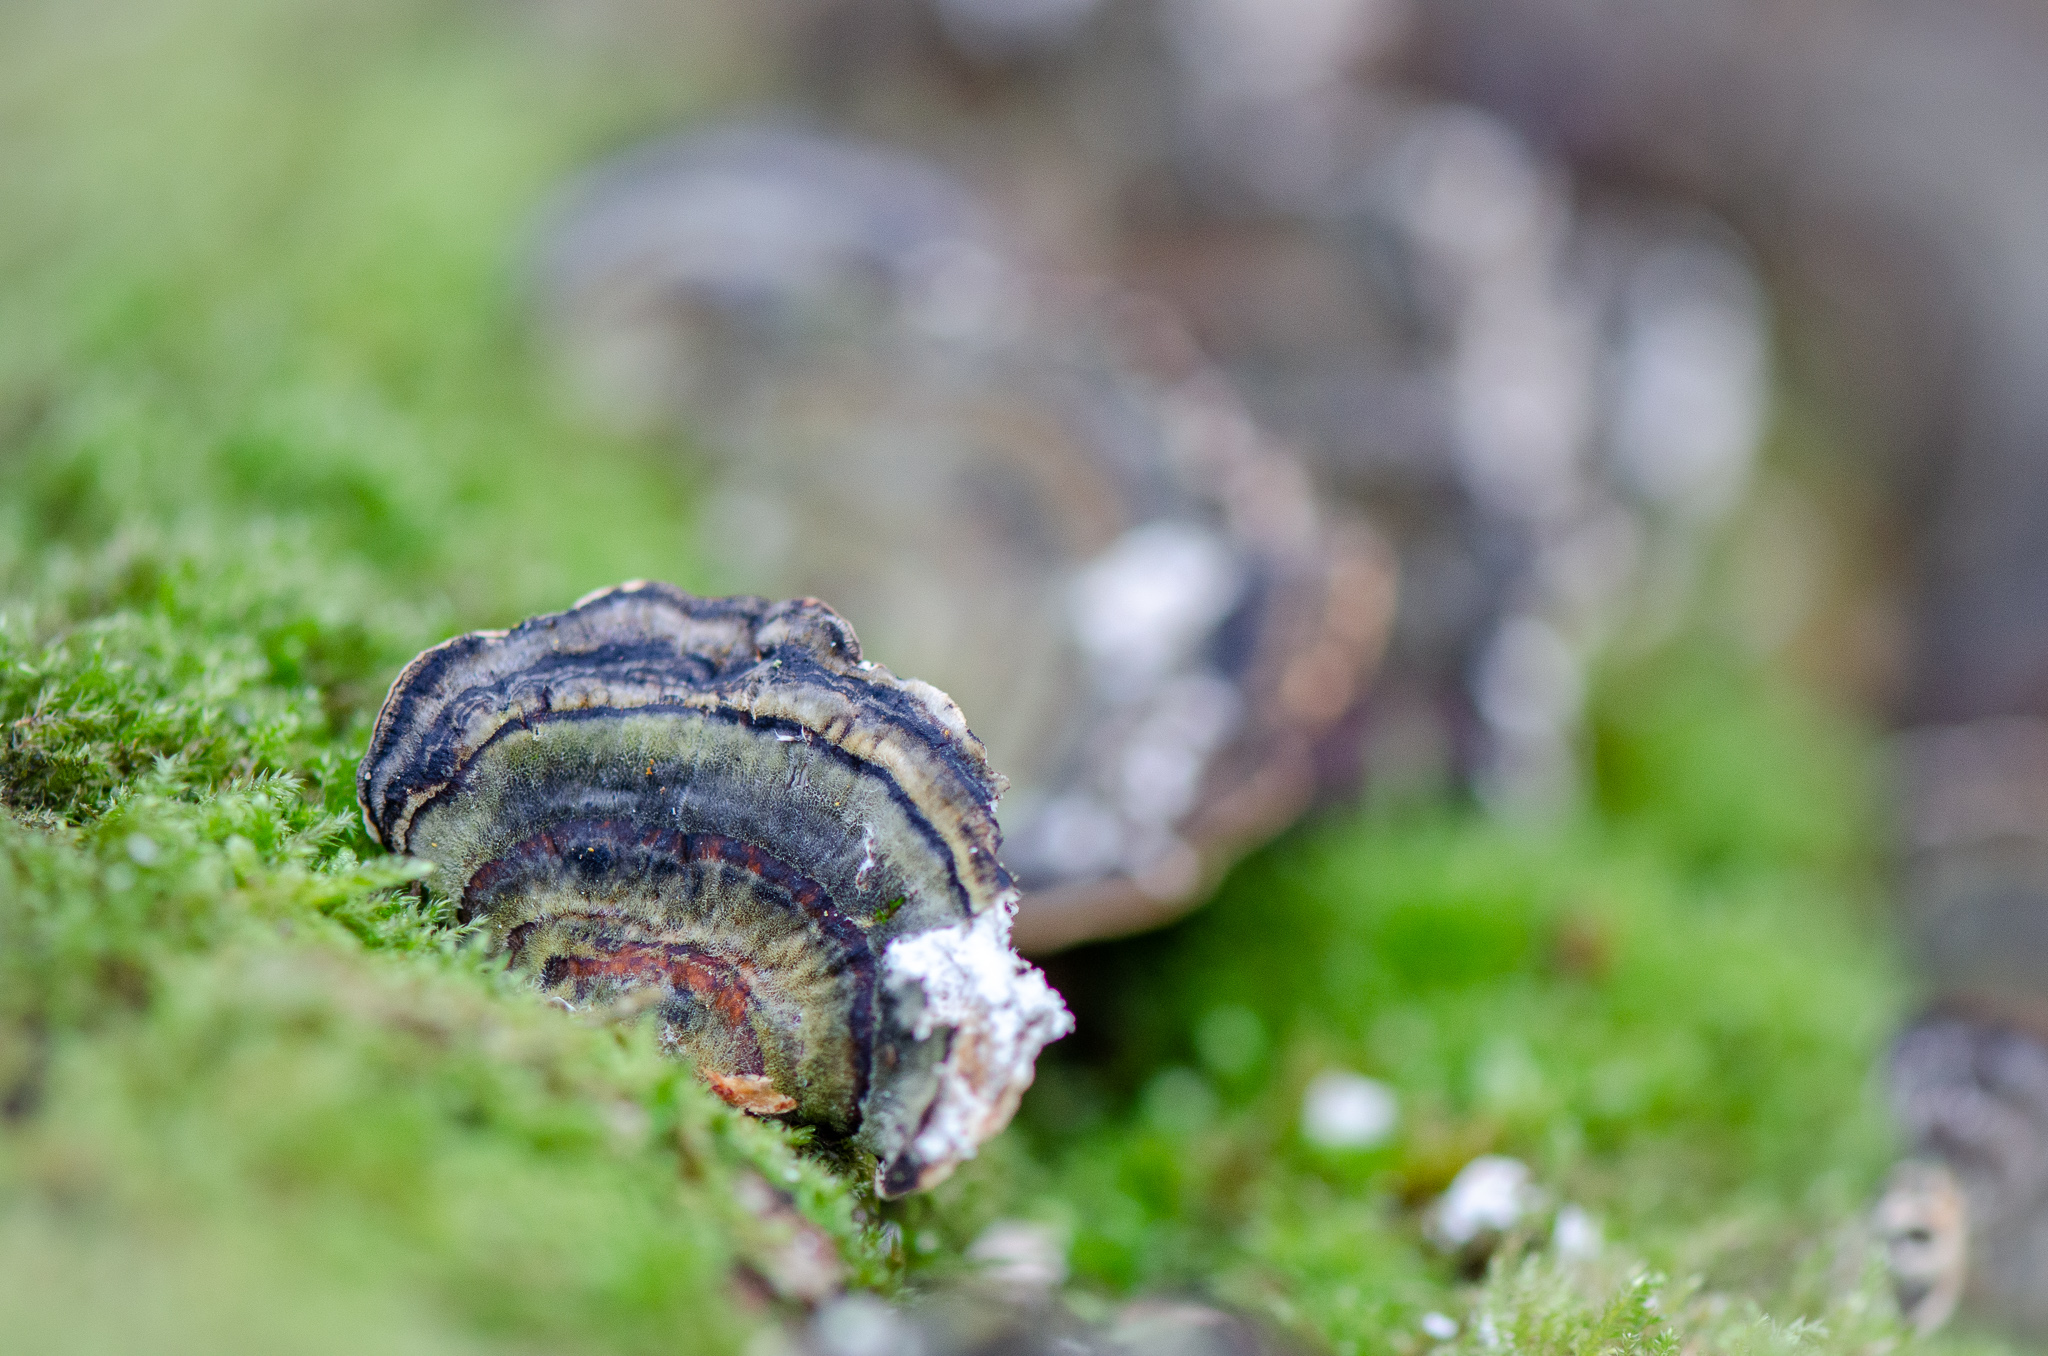 Turkey Tail fungus   Nikon D5100- 105mm macro lens- F3.2-1/250 sec- ISO 800